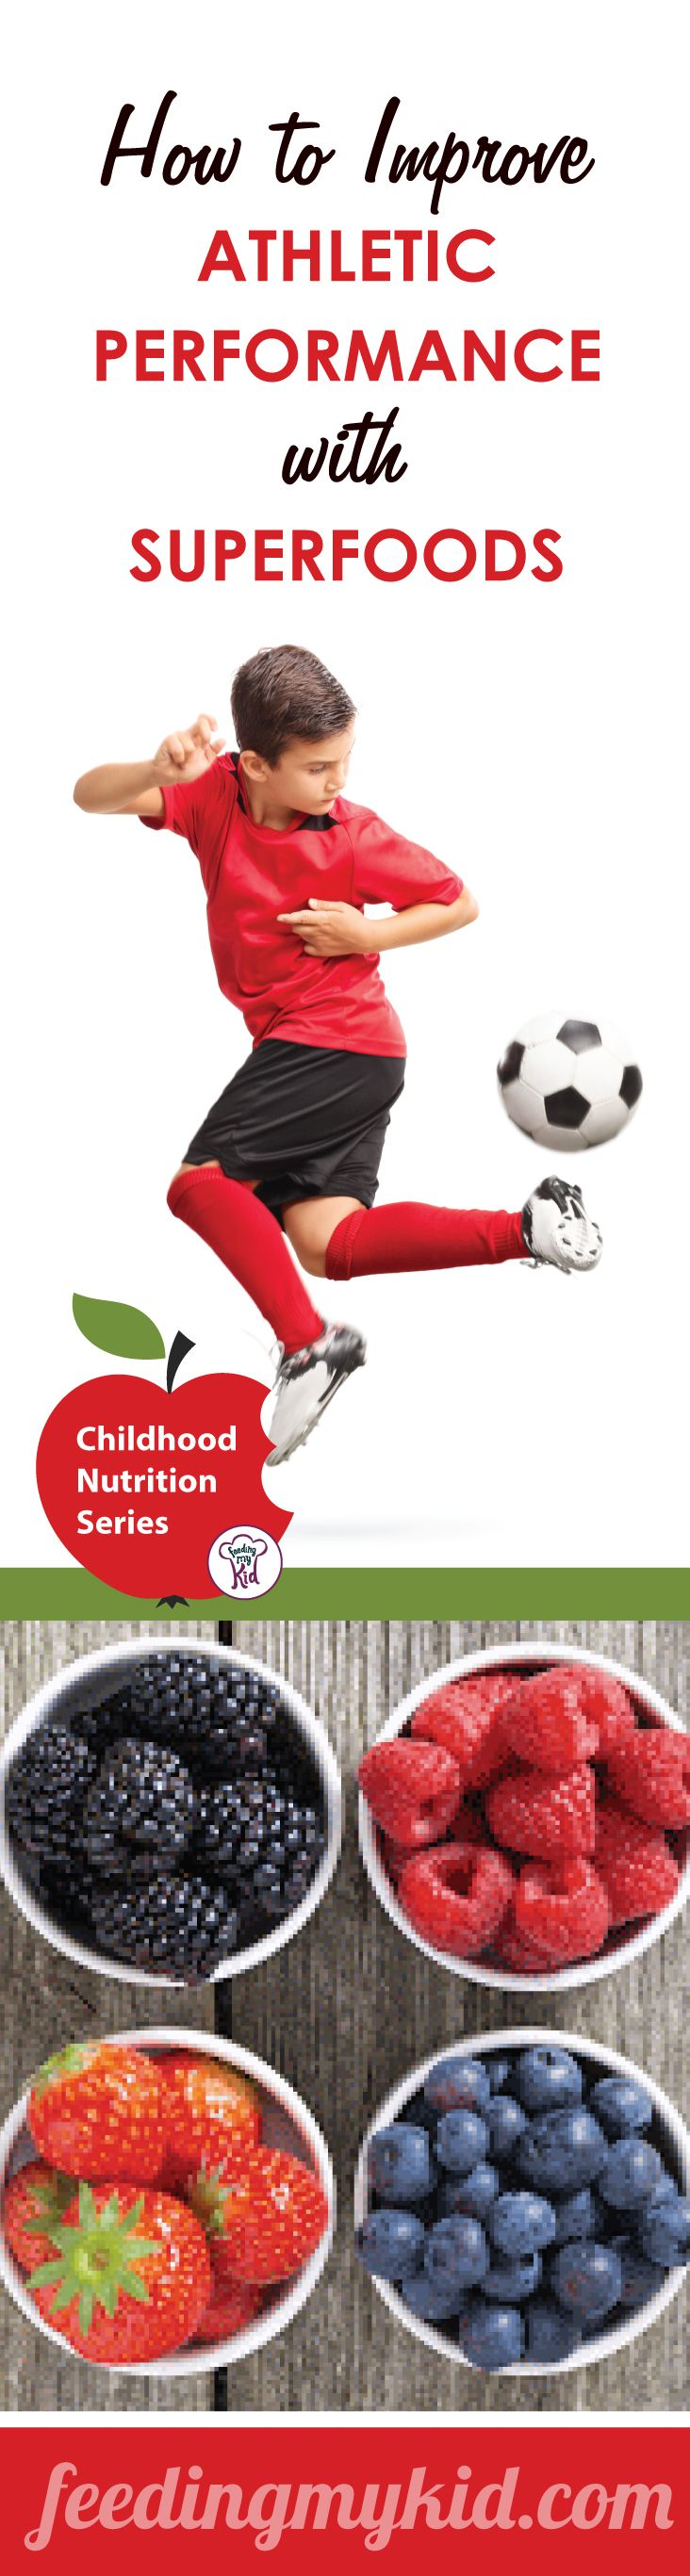 How to Improve Athletic Performance with Superfoods #athletefood